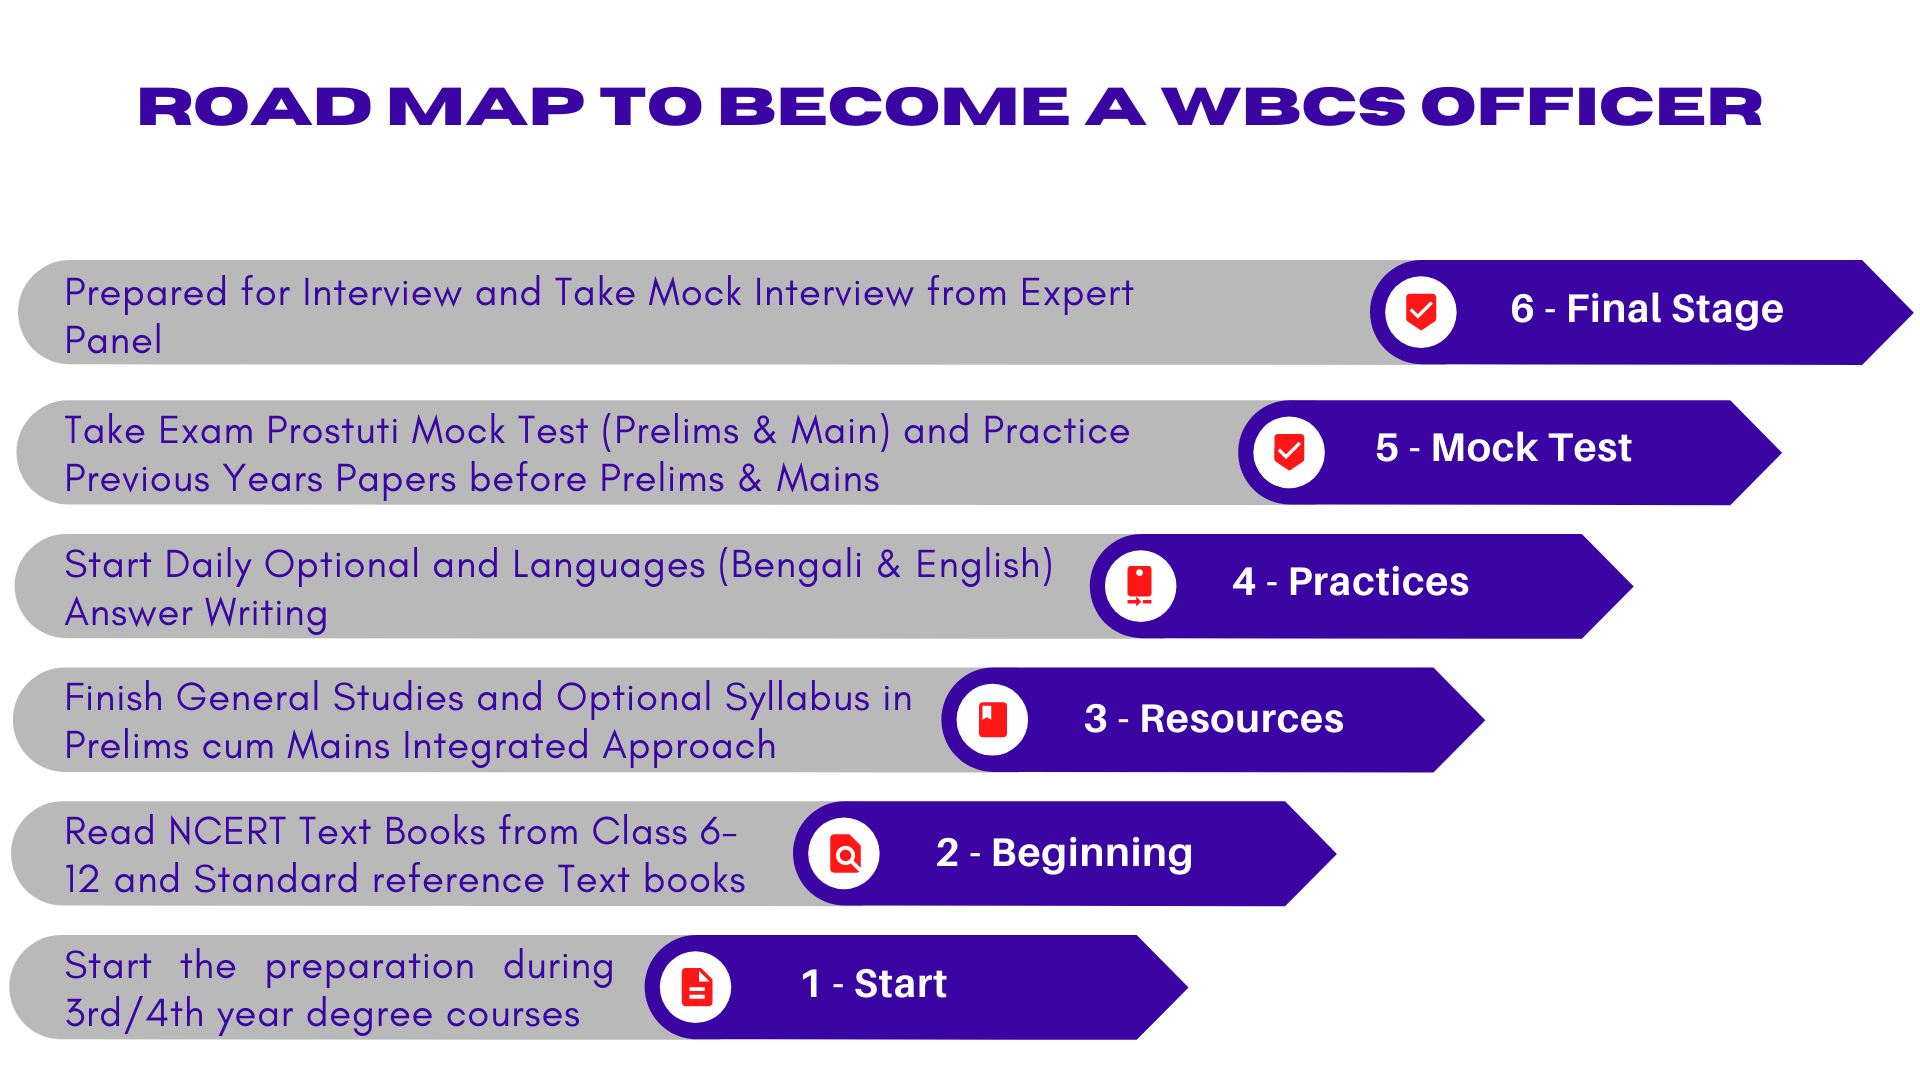 Road Map to become a WBCS Officer